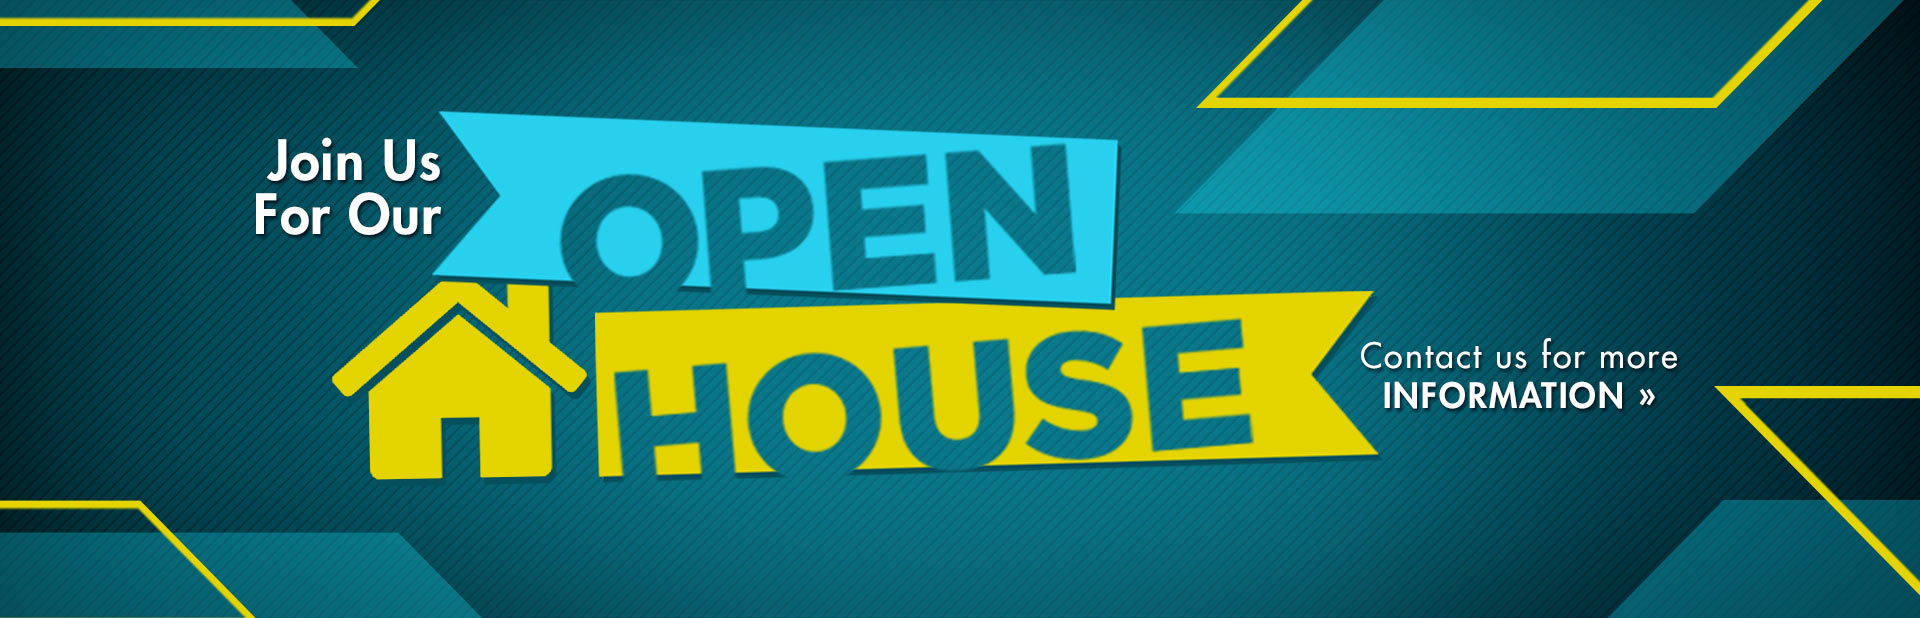 Open House: Contact us for more information.